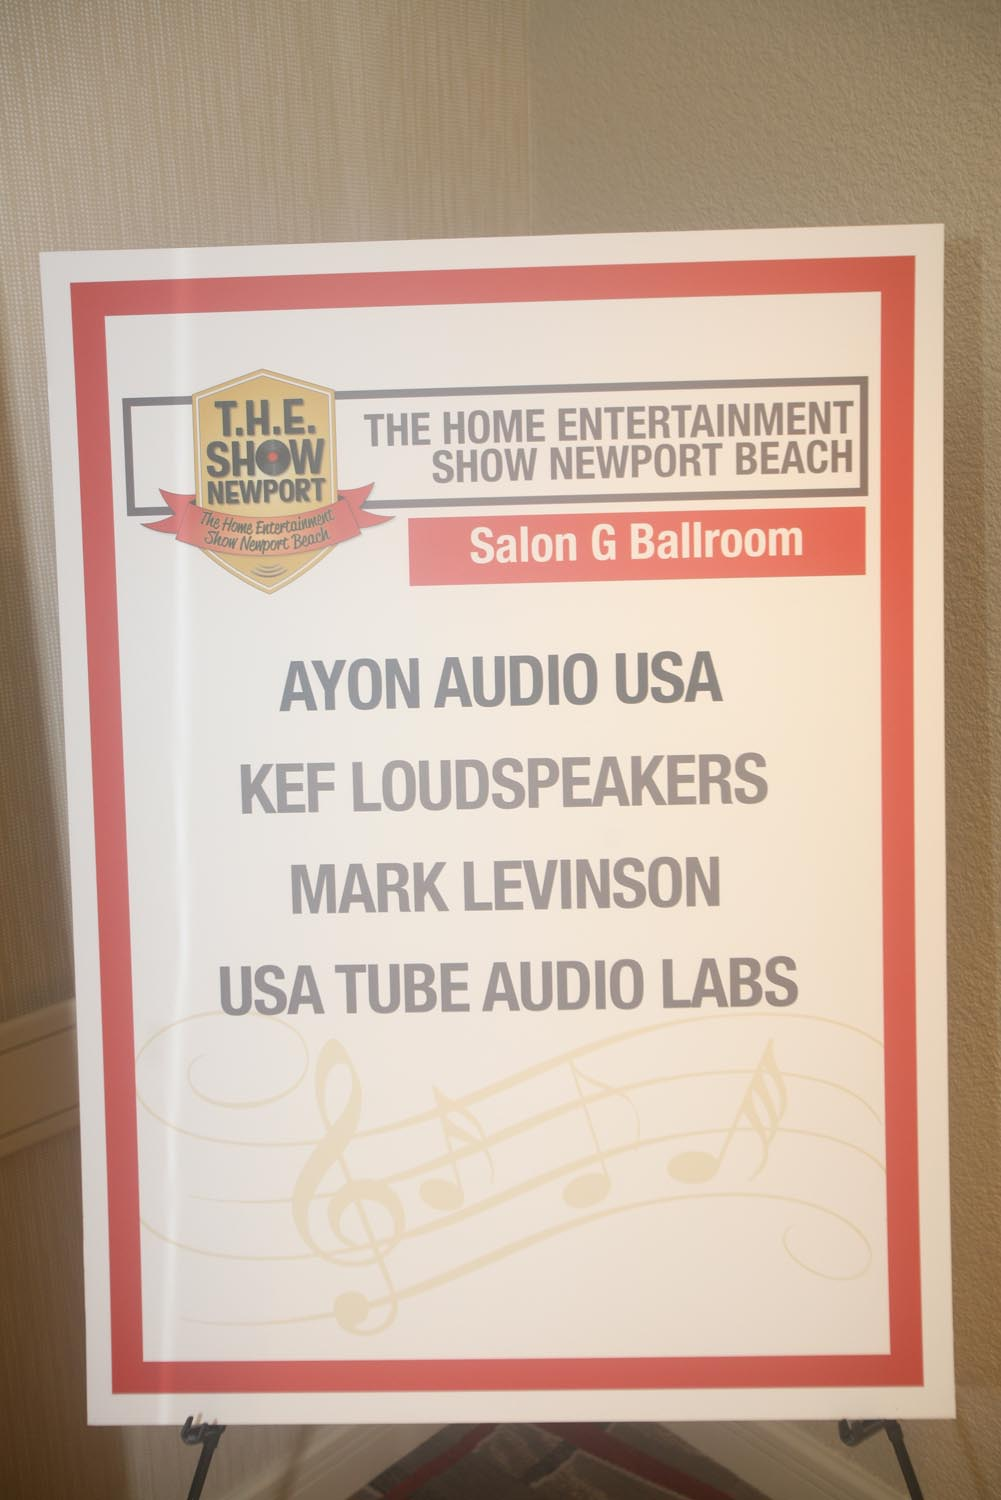 Ayon Audio USA, KEF Loudspeakers, Mark Levinson, USA Tube